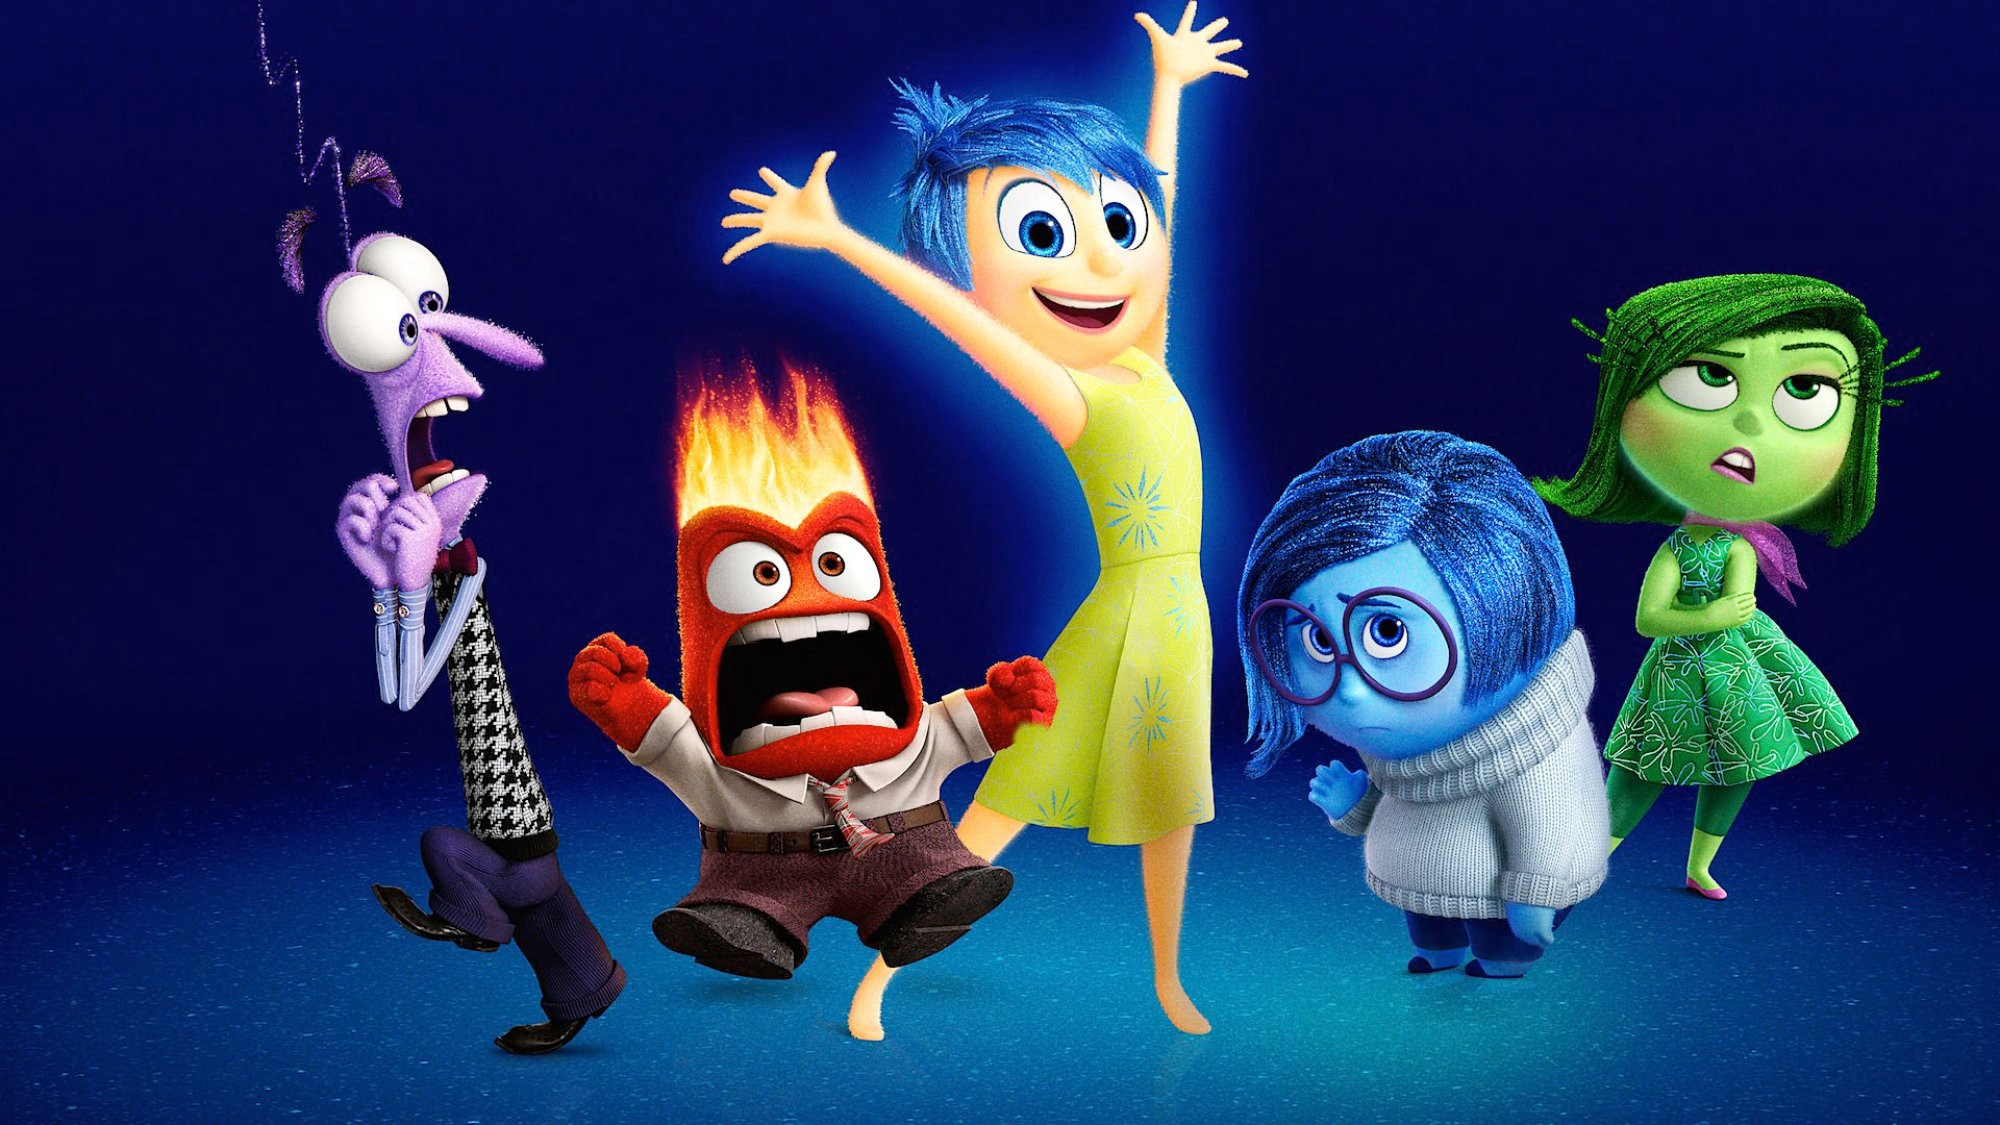 A Few Lessons Leaders Can Learn From The Movie Inside Out | by Sandeep Kashyap | Medium